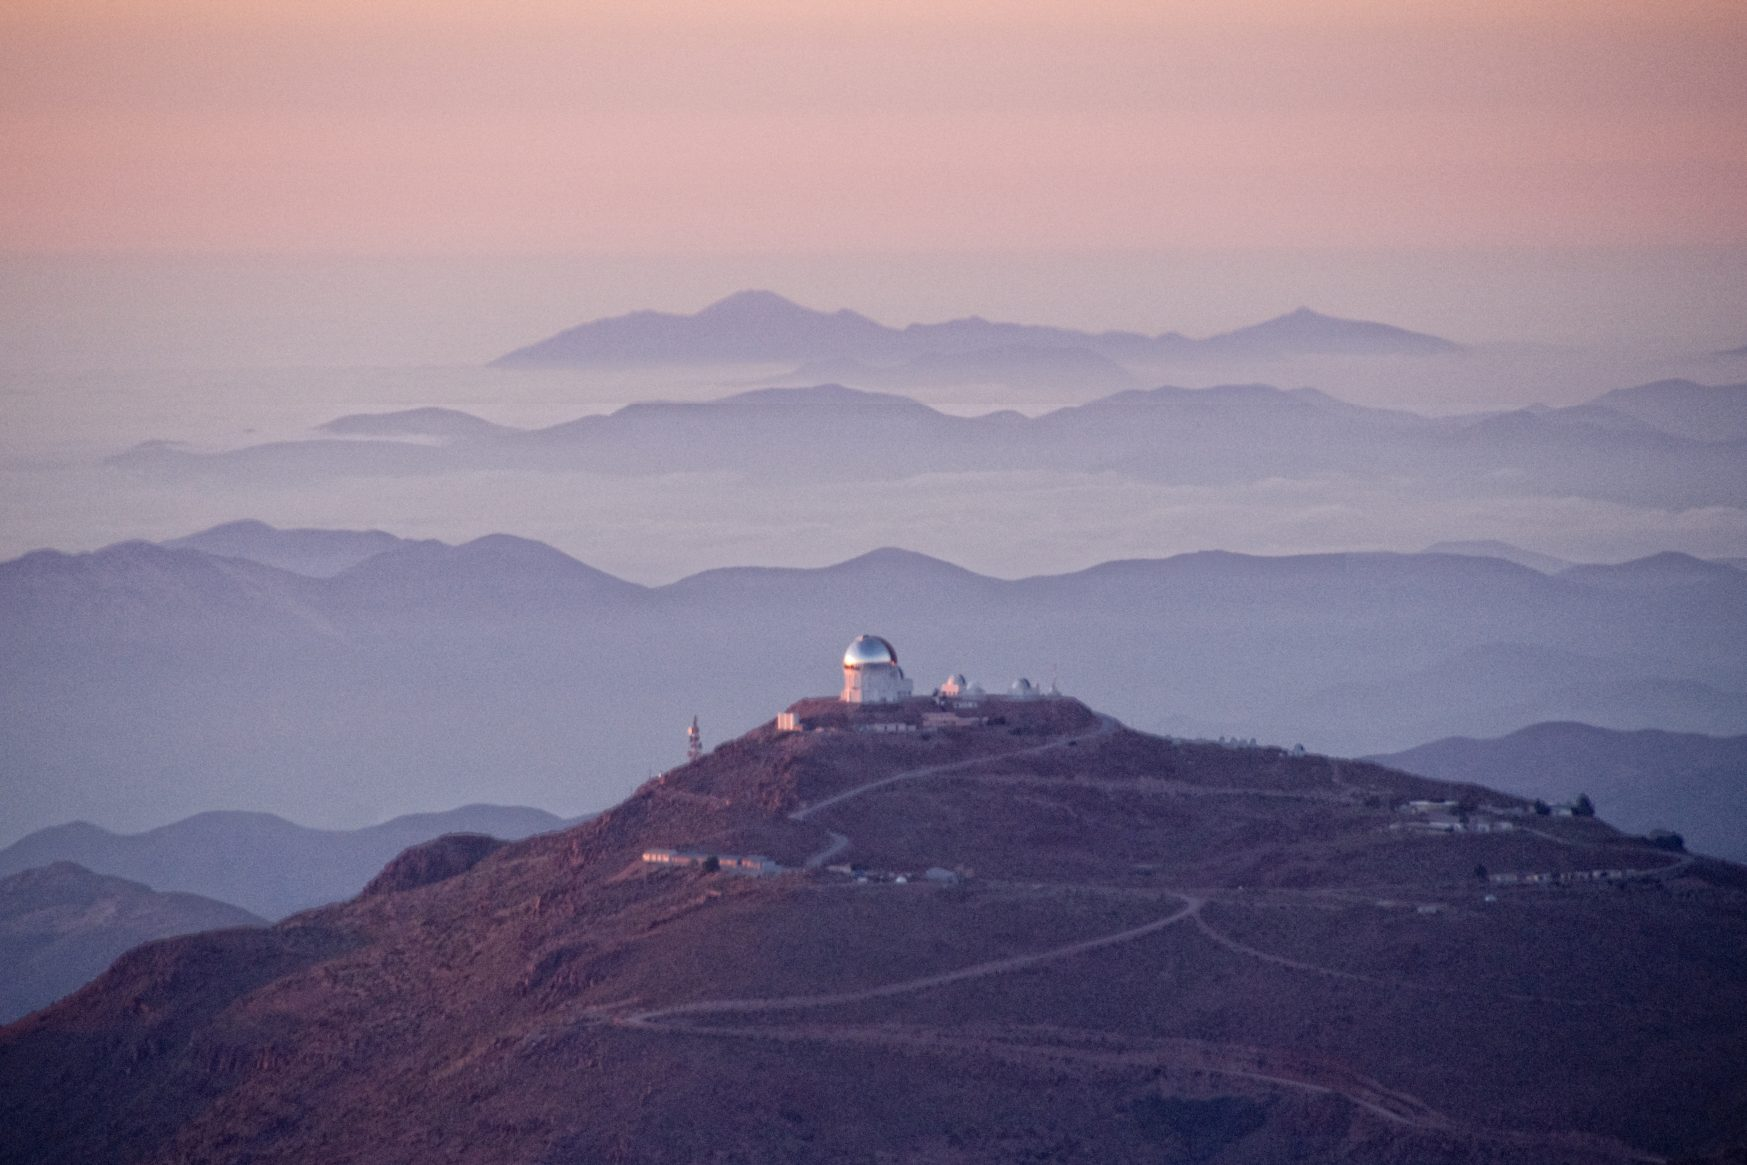 The Cerro Tololo Inter-American Observatory. Photograph by Dennis Crabtree, 2008. CC BY-NC-ND 2.0.